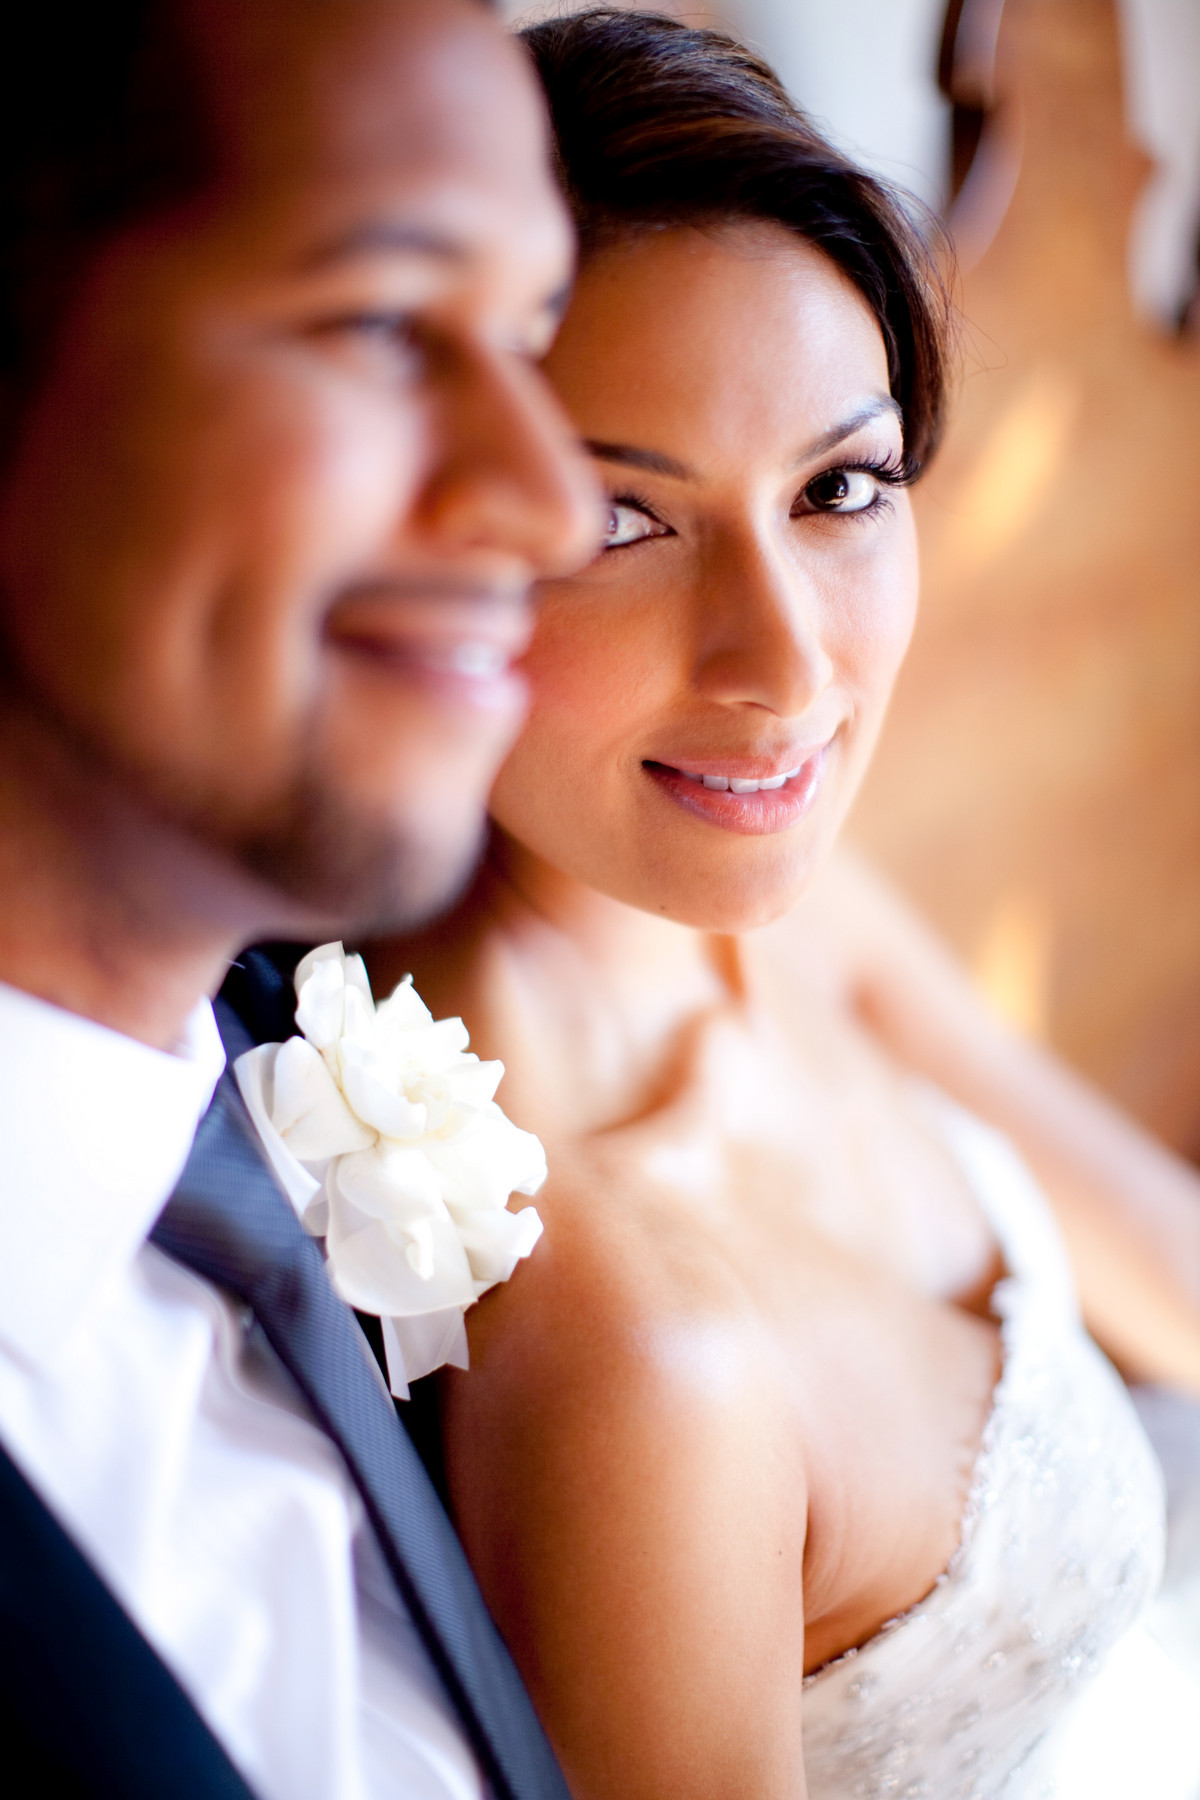 Couple wedding at Pelican Hill Resort by John and Joseph from Los Angeles